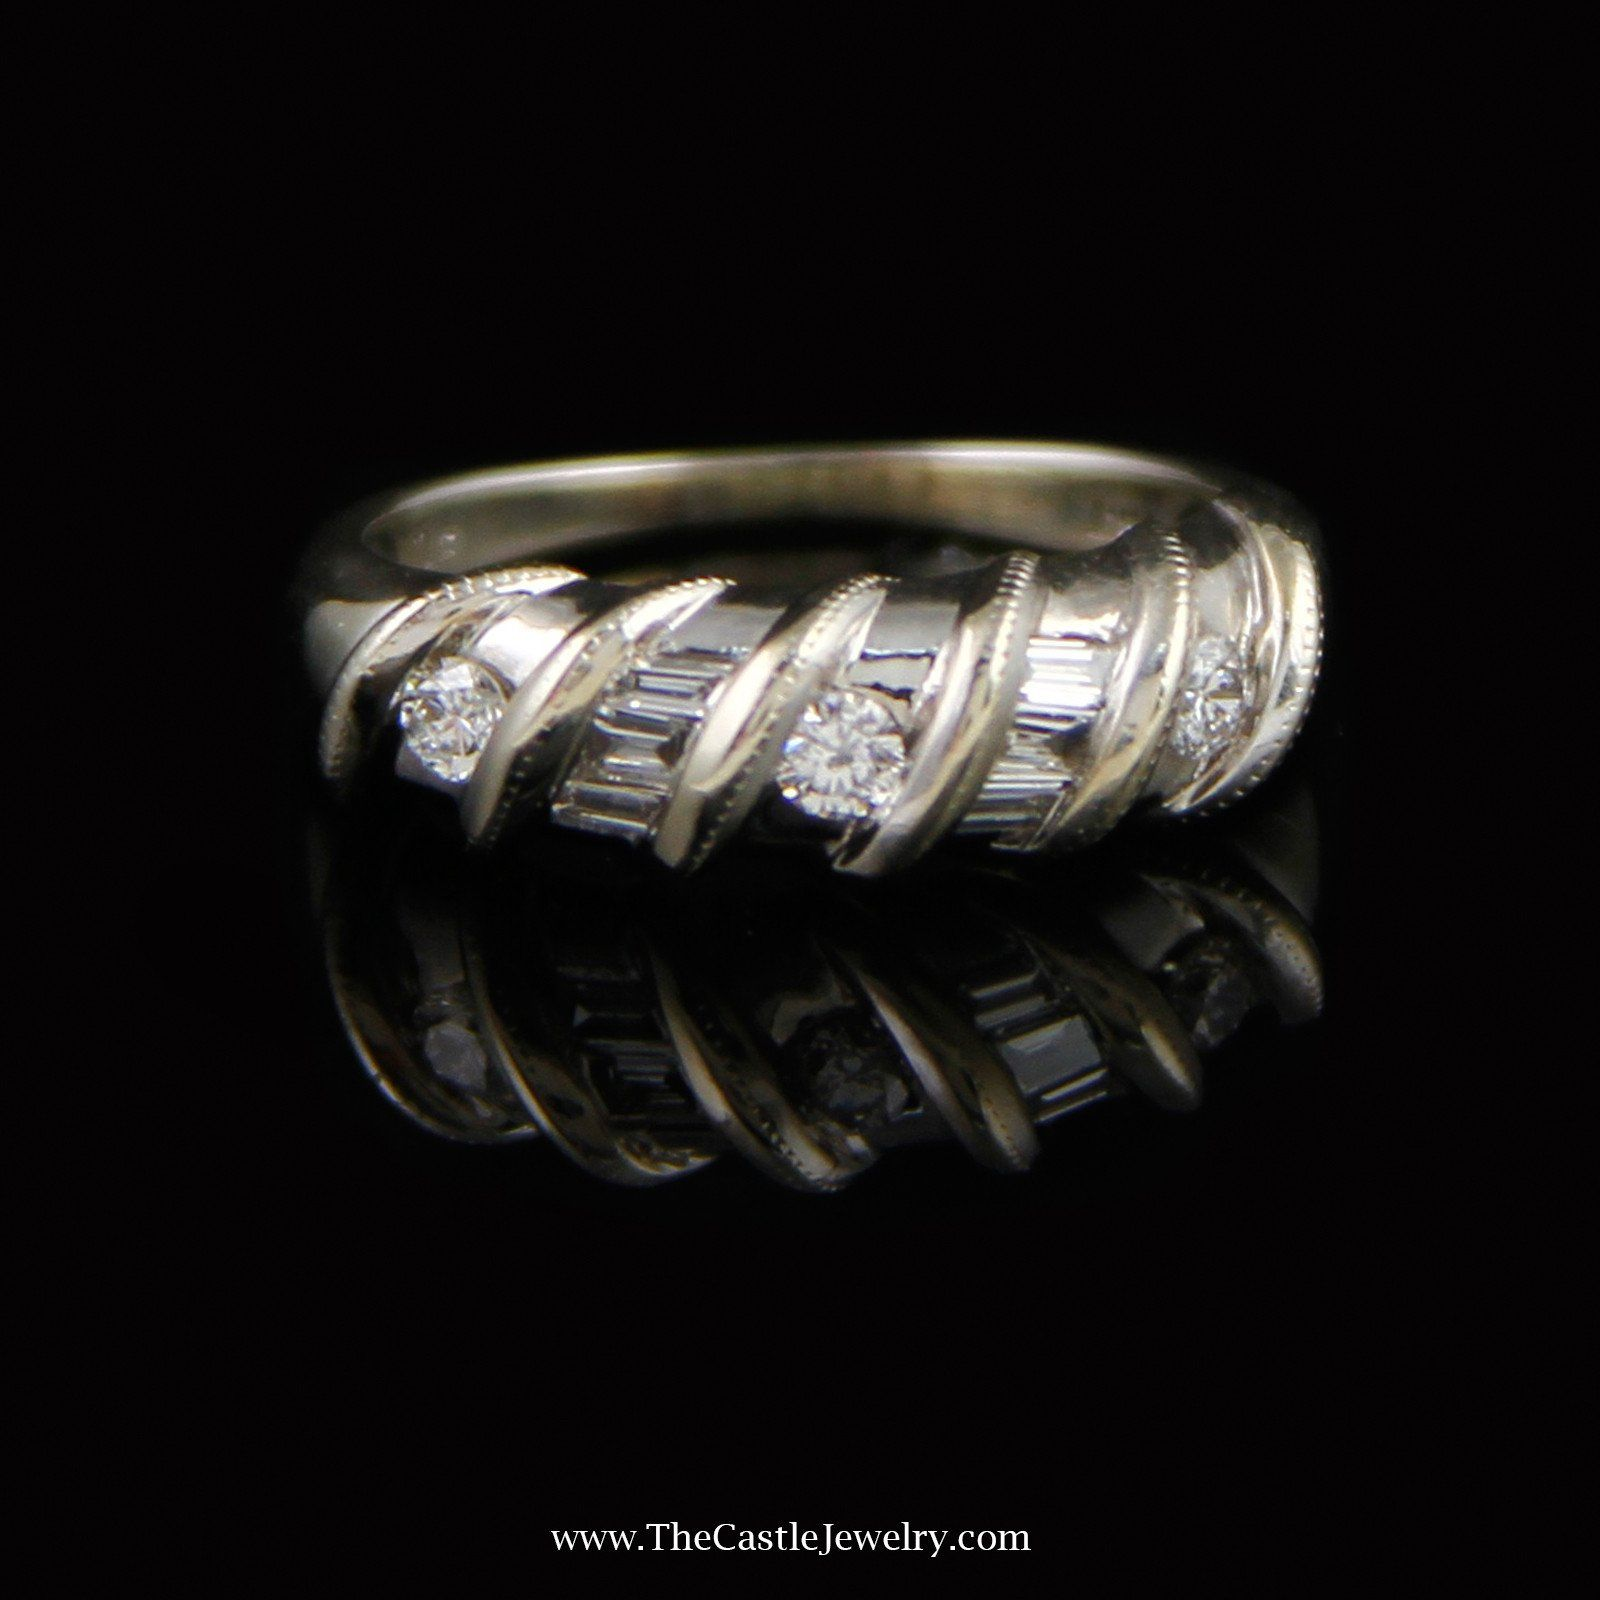 Swirl Design Ring with .25cttw Total Diamond Weight in 14K White Gold